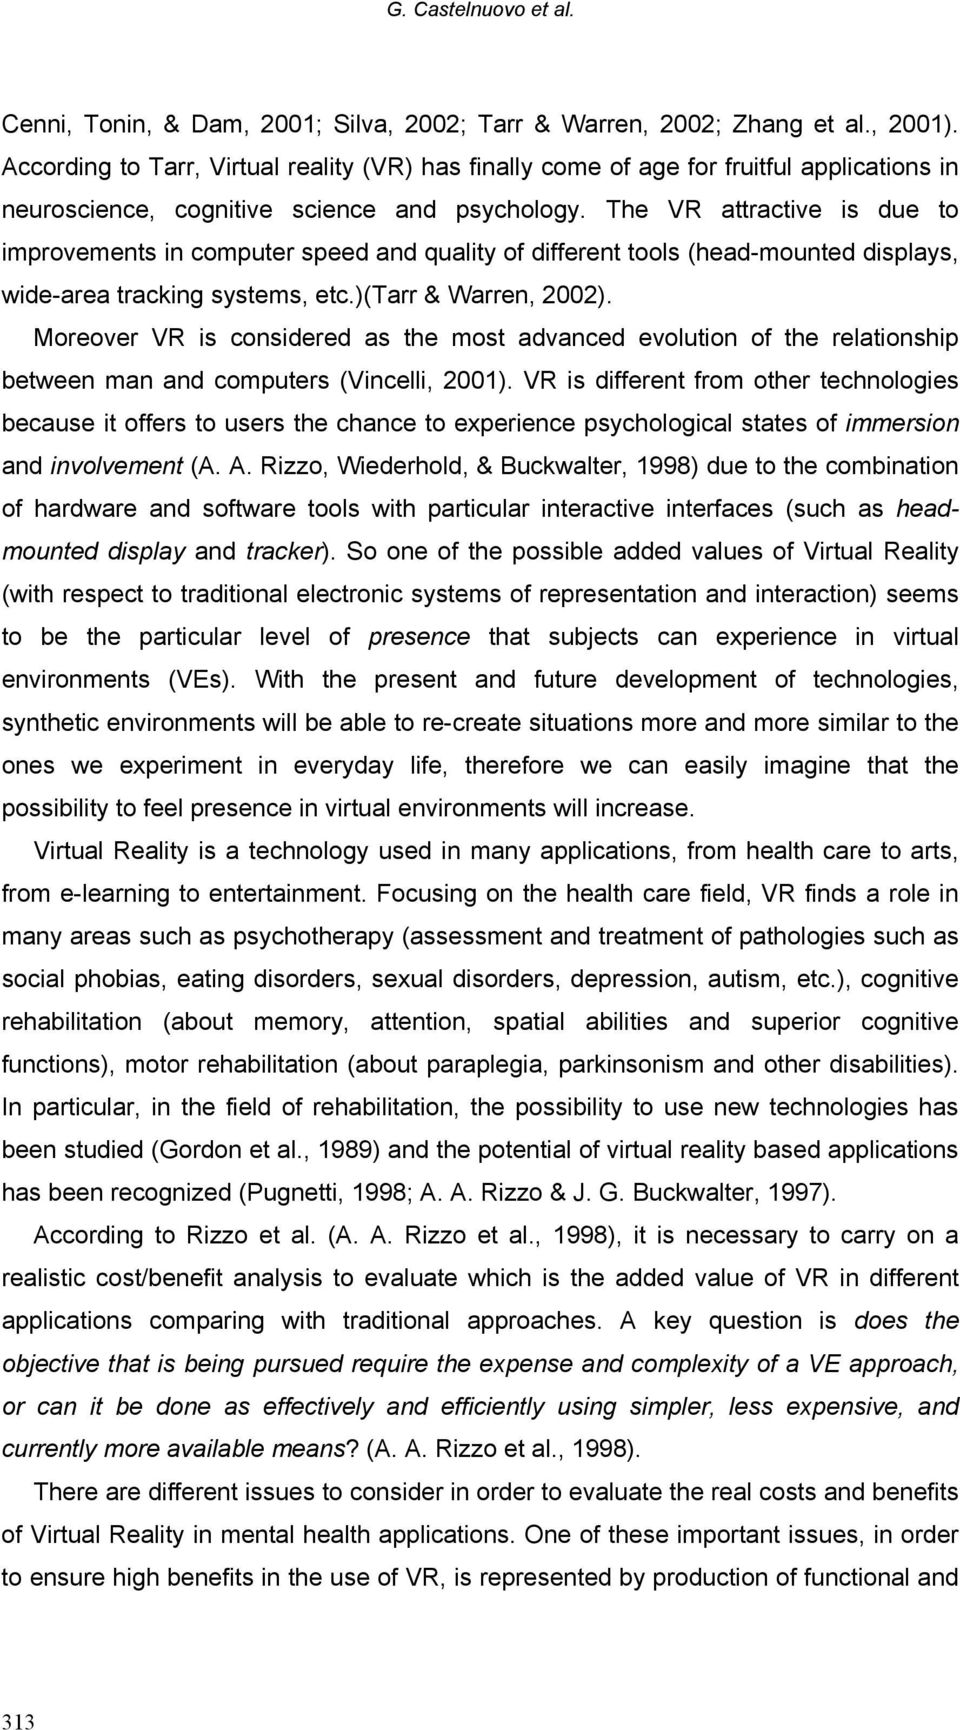 The VR attractive is due to improvements in computer speed and quality of different tools (head-mounted displays, wide-area tracking systems, etc.)(tarr & Warren, 2002).